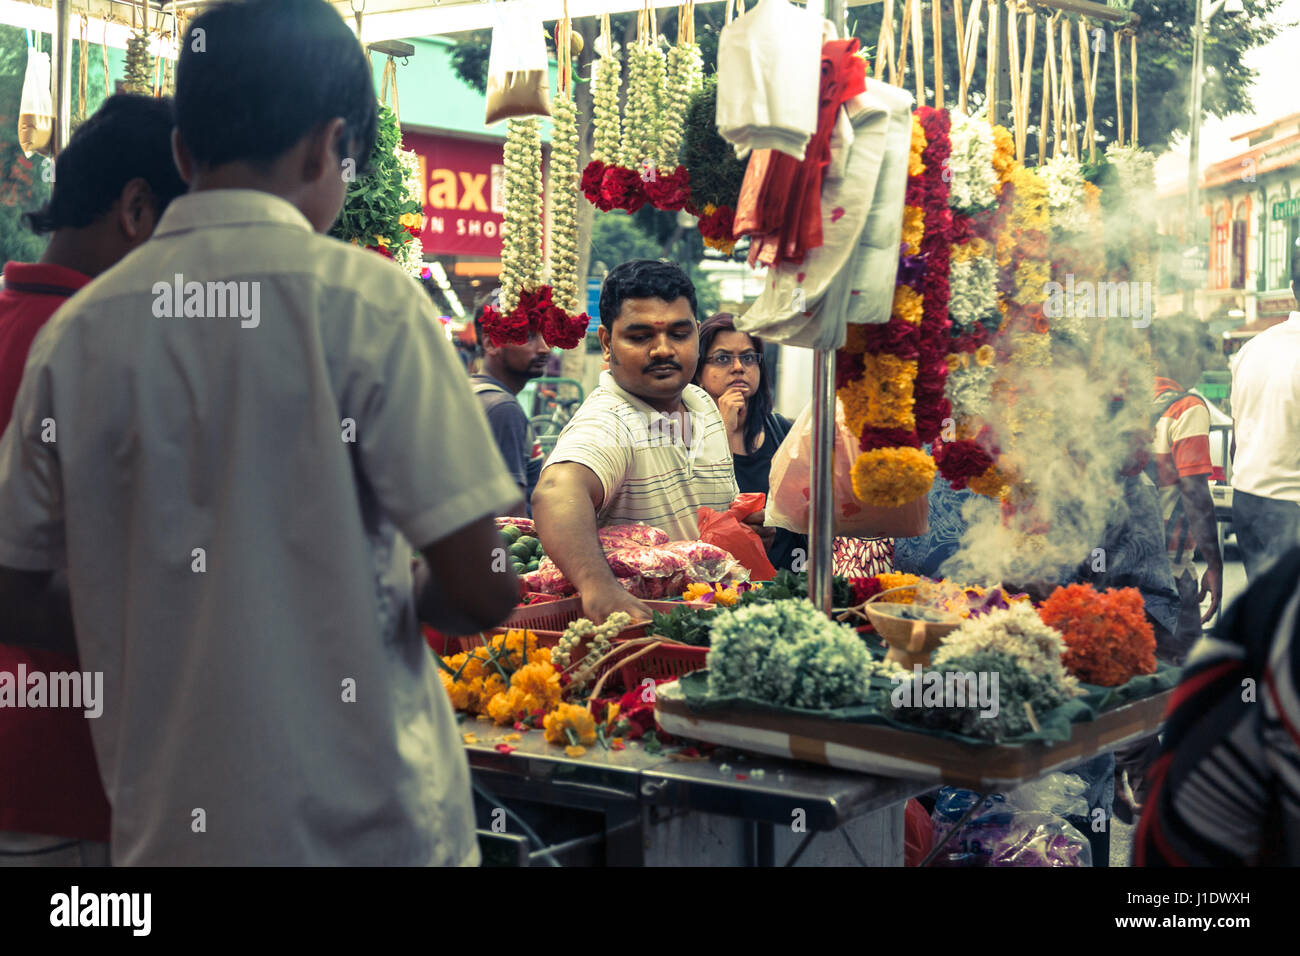 An Indian street vendor selling flowers and garlands in a busy street market in little India, Singapore, southeast - Stock Image